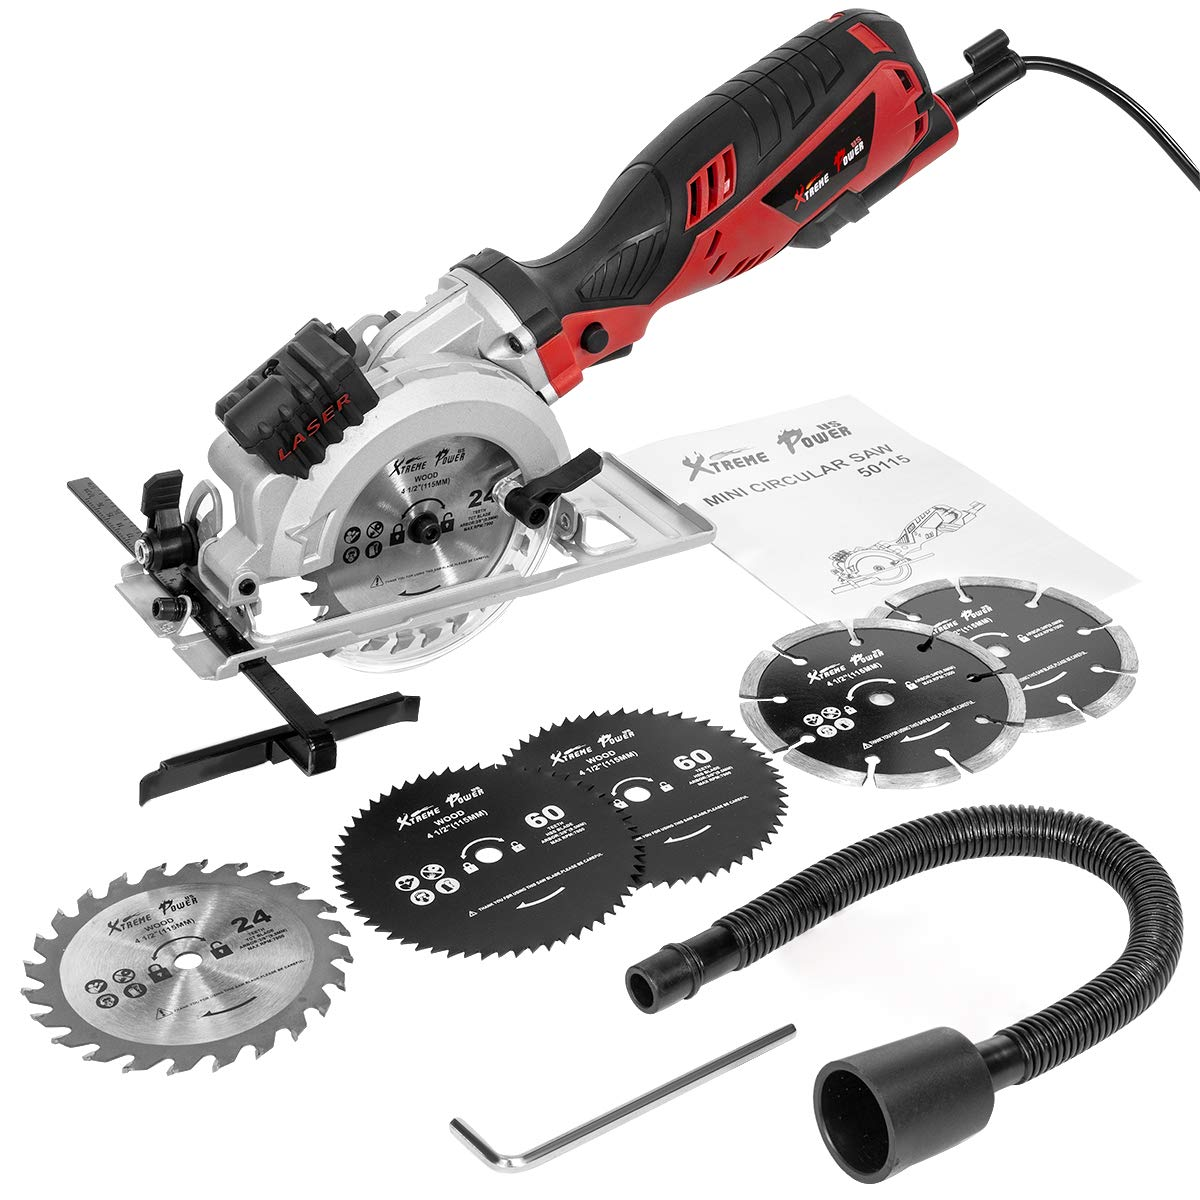 XtremepowerUS Electric Circular Saw Compact Saw with 6 Saw Blade 4-1 2 with Beam Guide 3500RPM for Wood, Soft Metal, PVC, Tile and Plastic Cuts